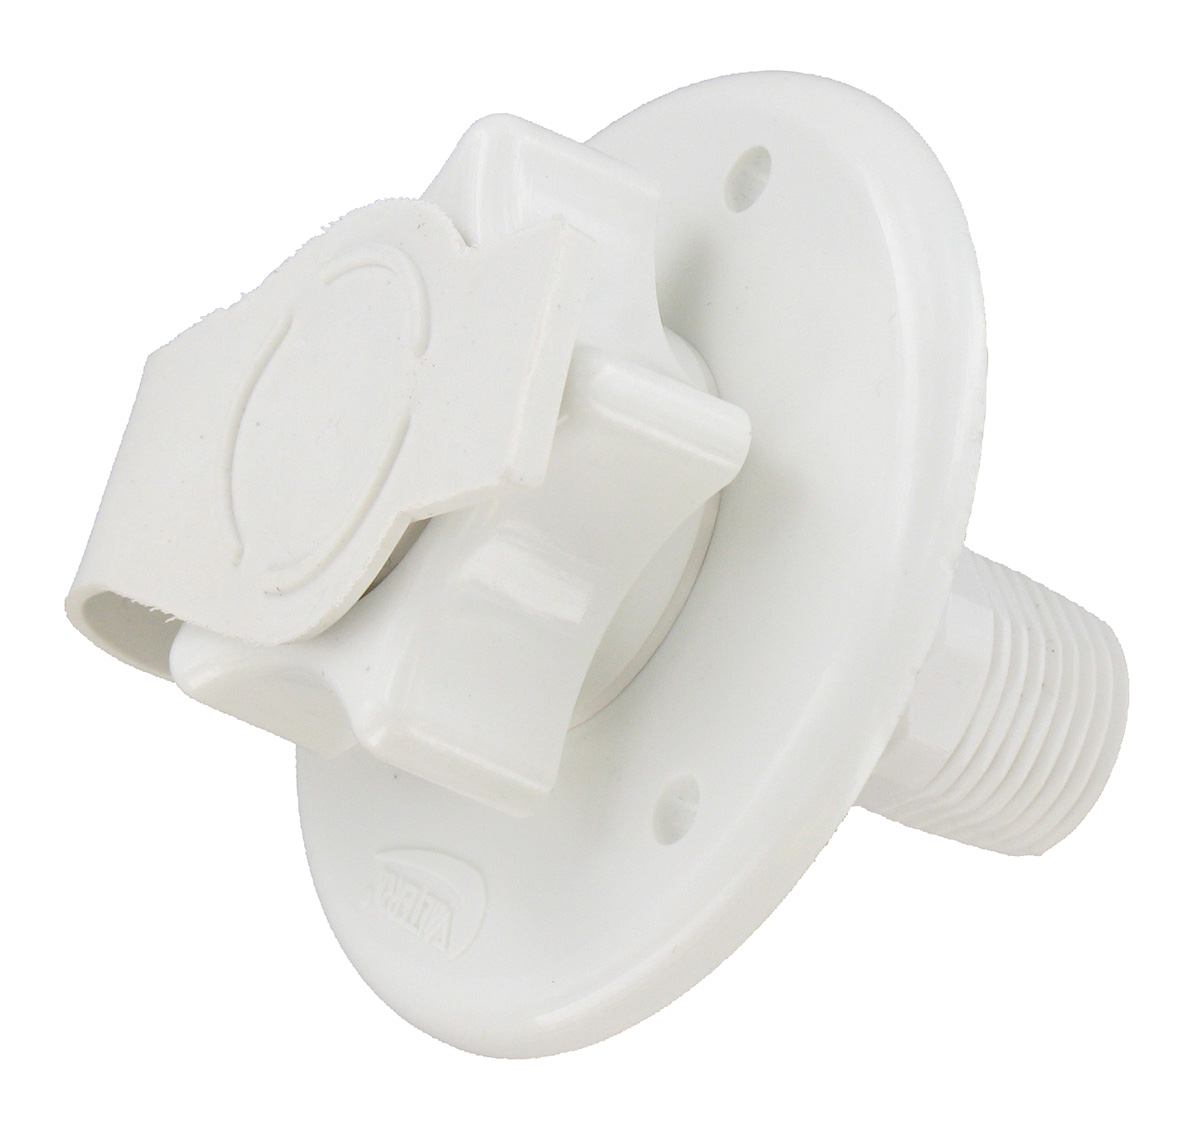 A01-0168 Valterra Fresh Water Inlet Used For RV Fresh Water System